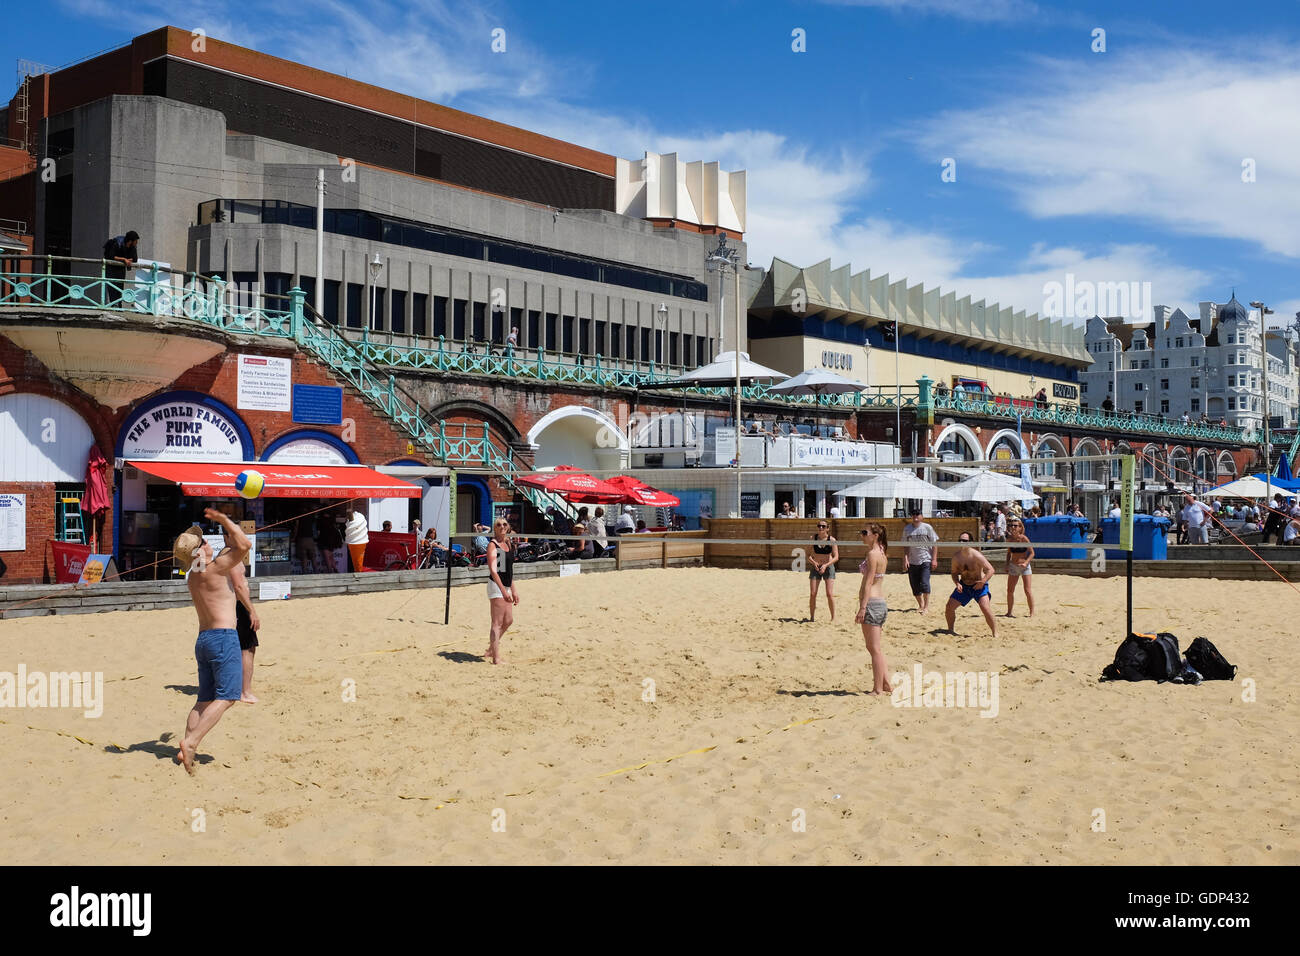 People playing beach volleyball in Brighton, England. - Stock Image